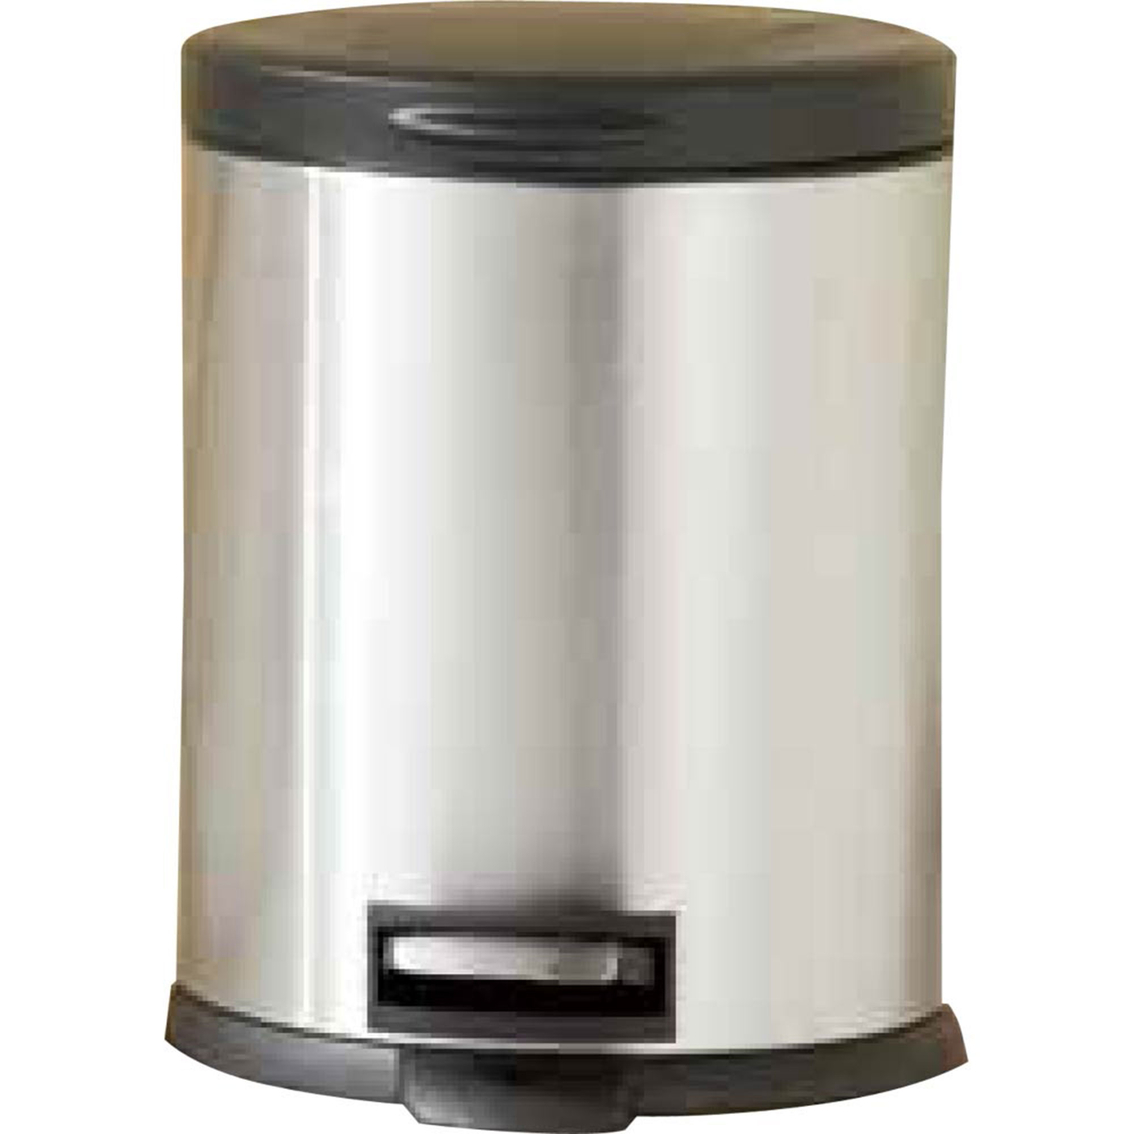 Simply Perfect Stainless Steel Trash Can | Trash Cans | Home ...